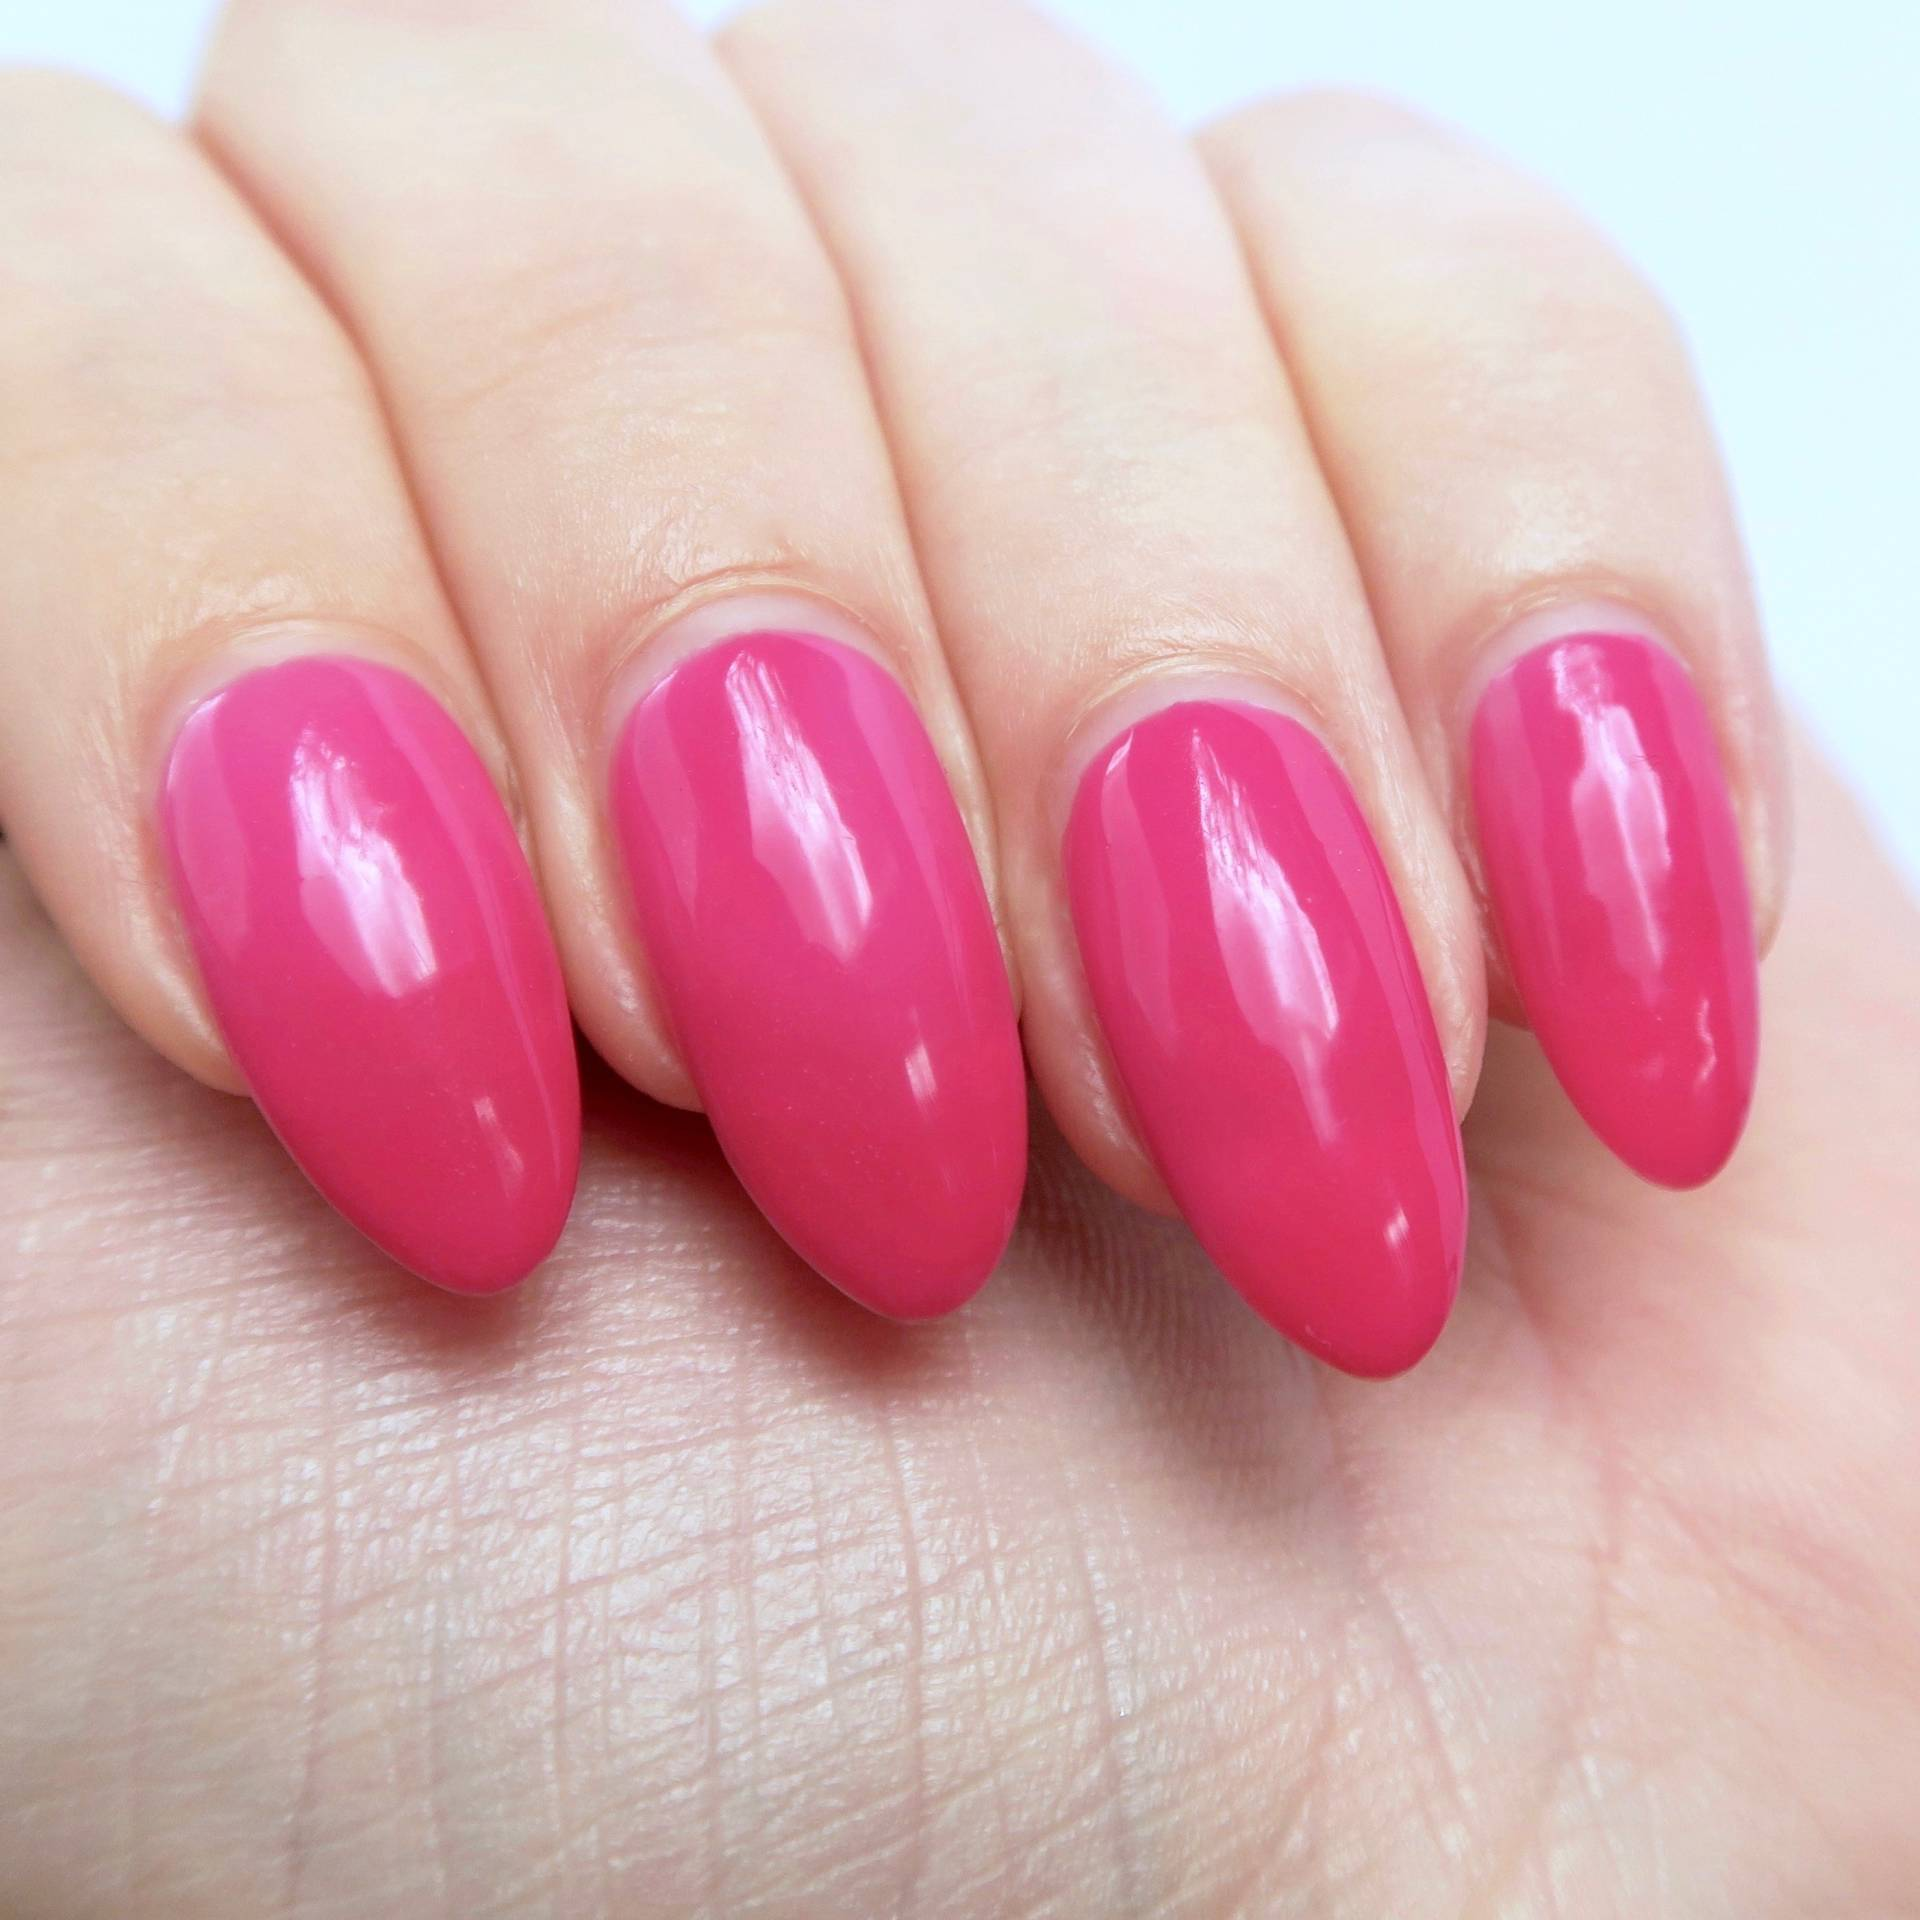 Madam-Glam-New-Gel-Polish-2 (1)